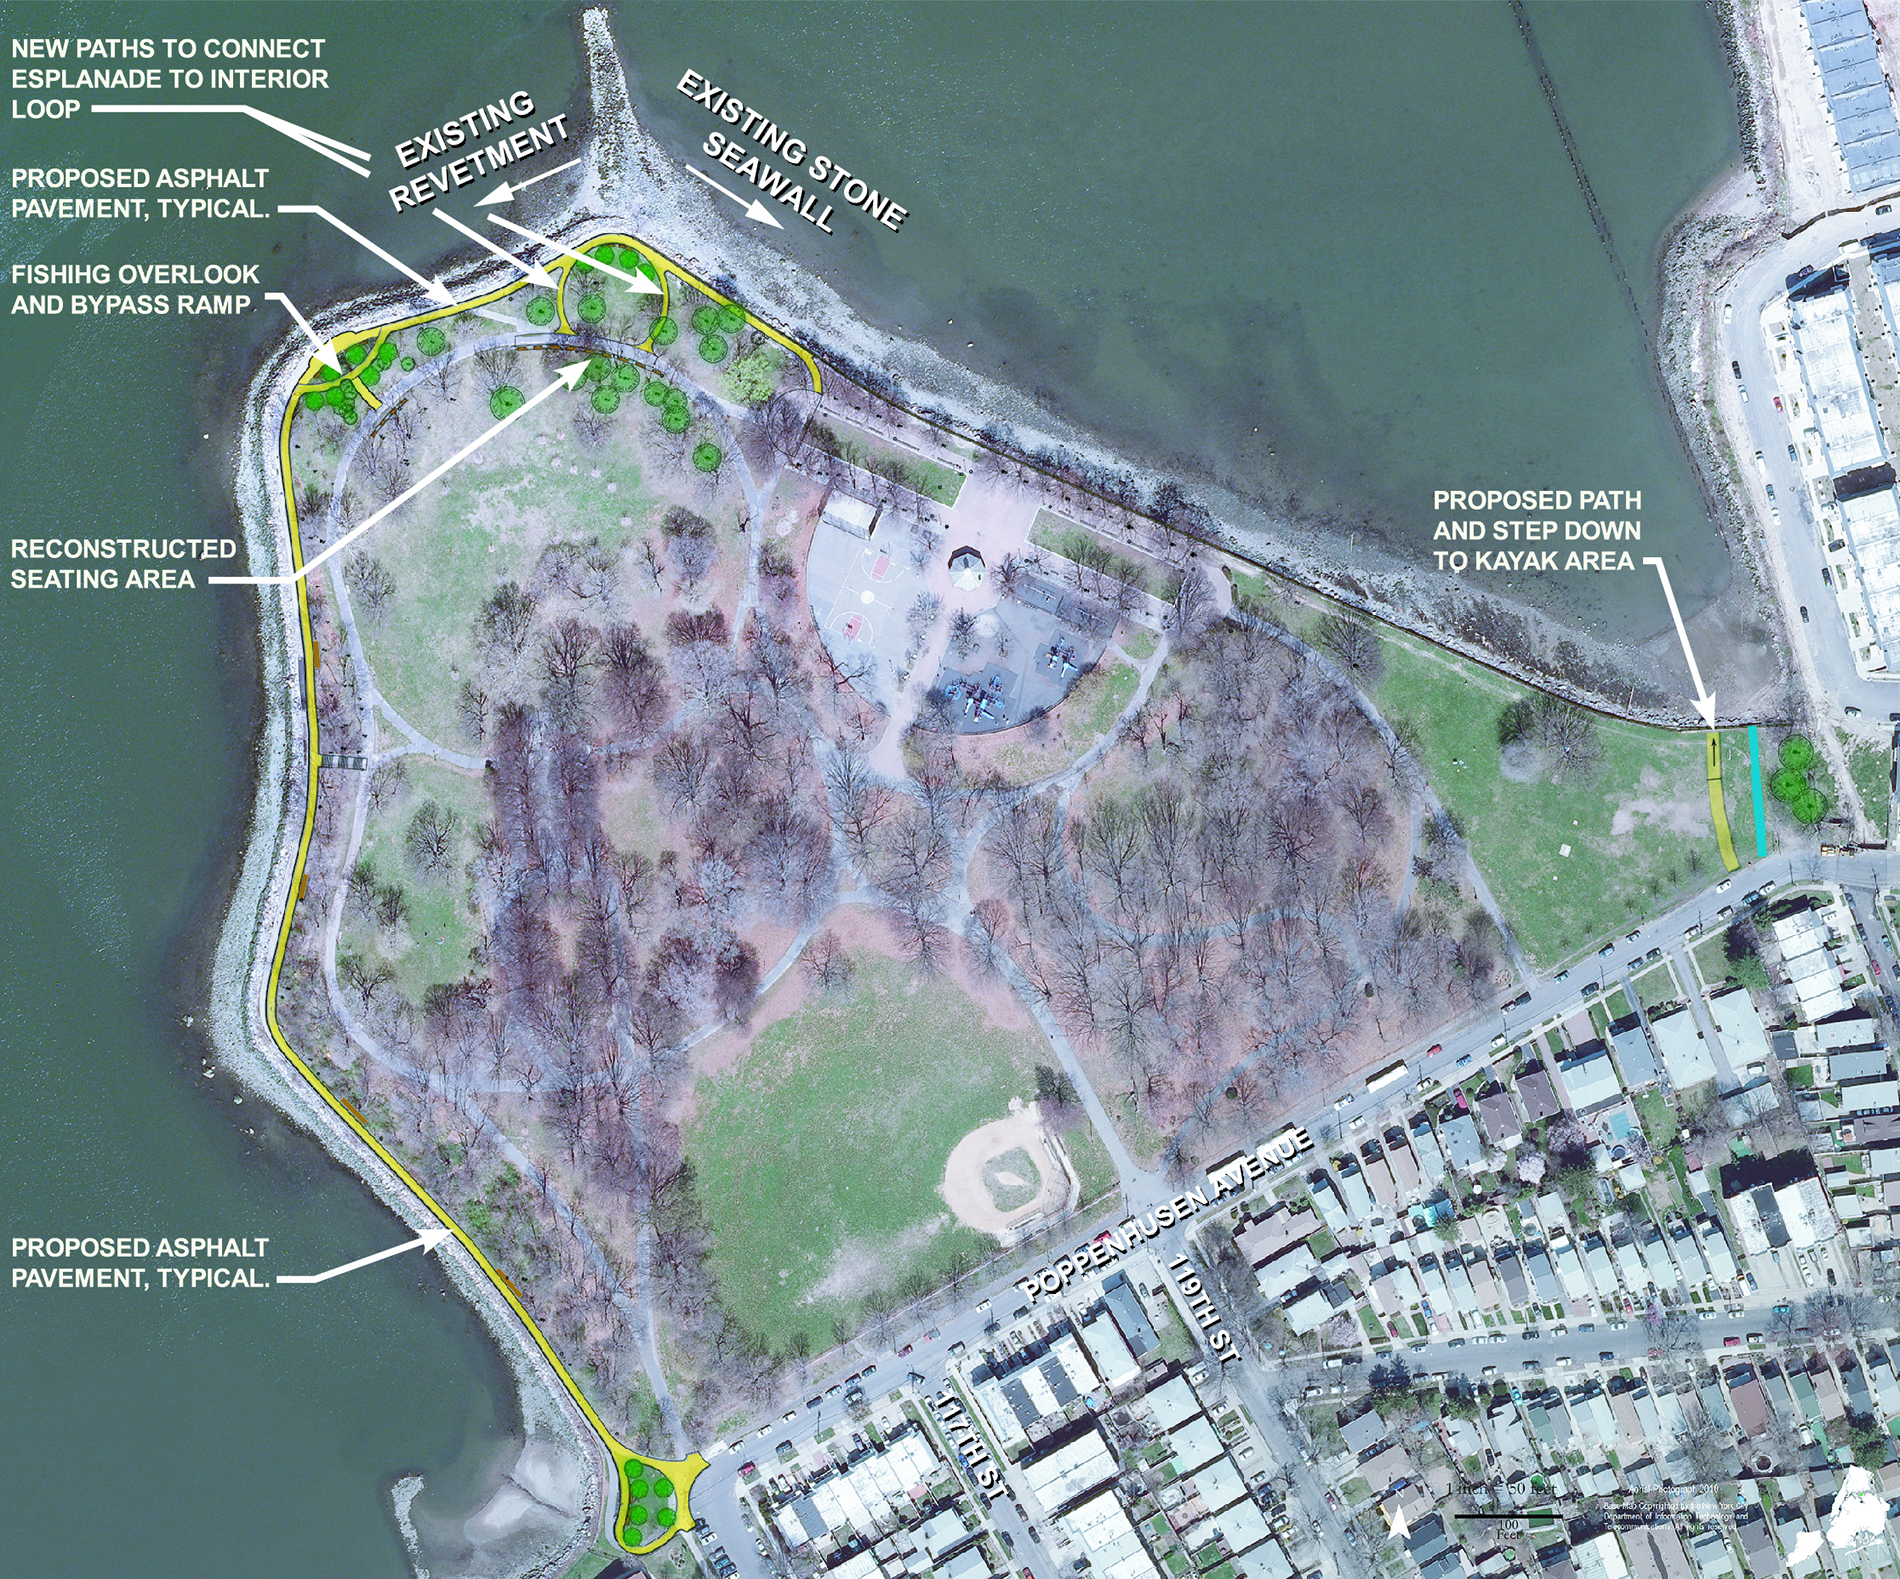 Design of MacNeil Park Esplanade Reconstruction